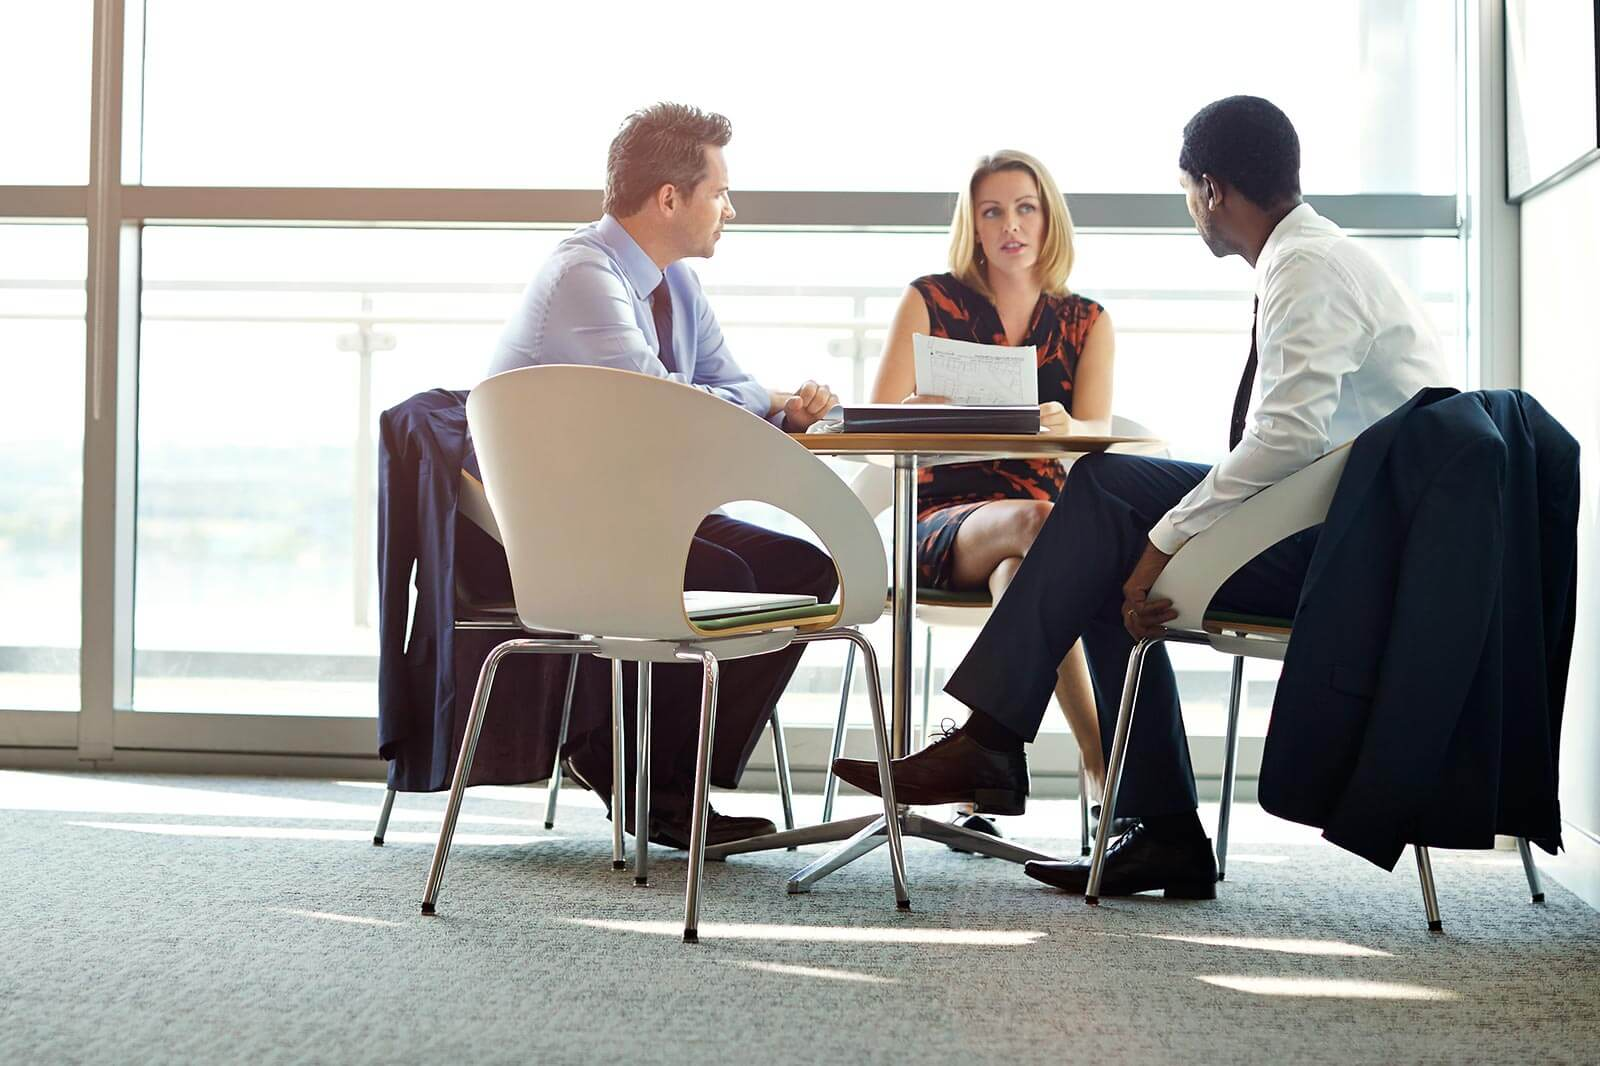 Advisory Services Banner - business meeting between three people